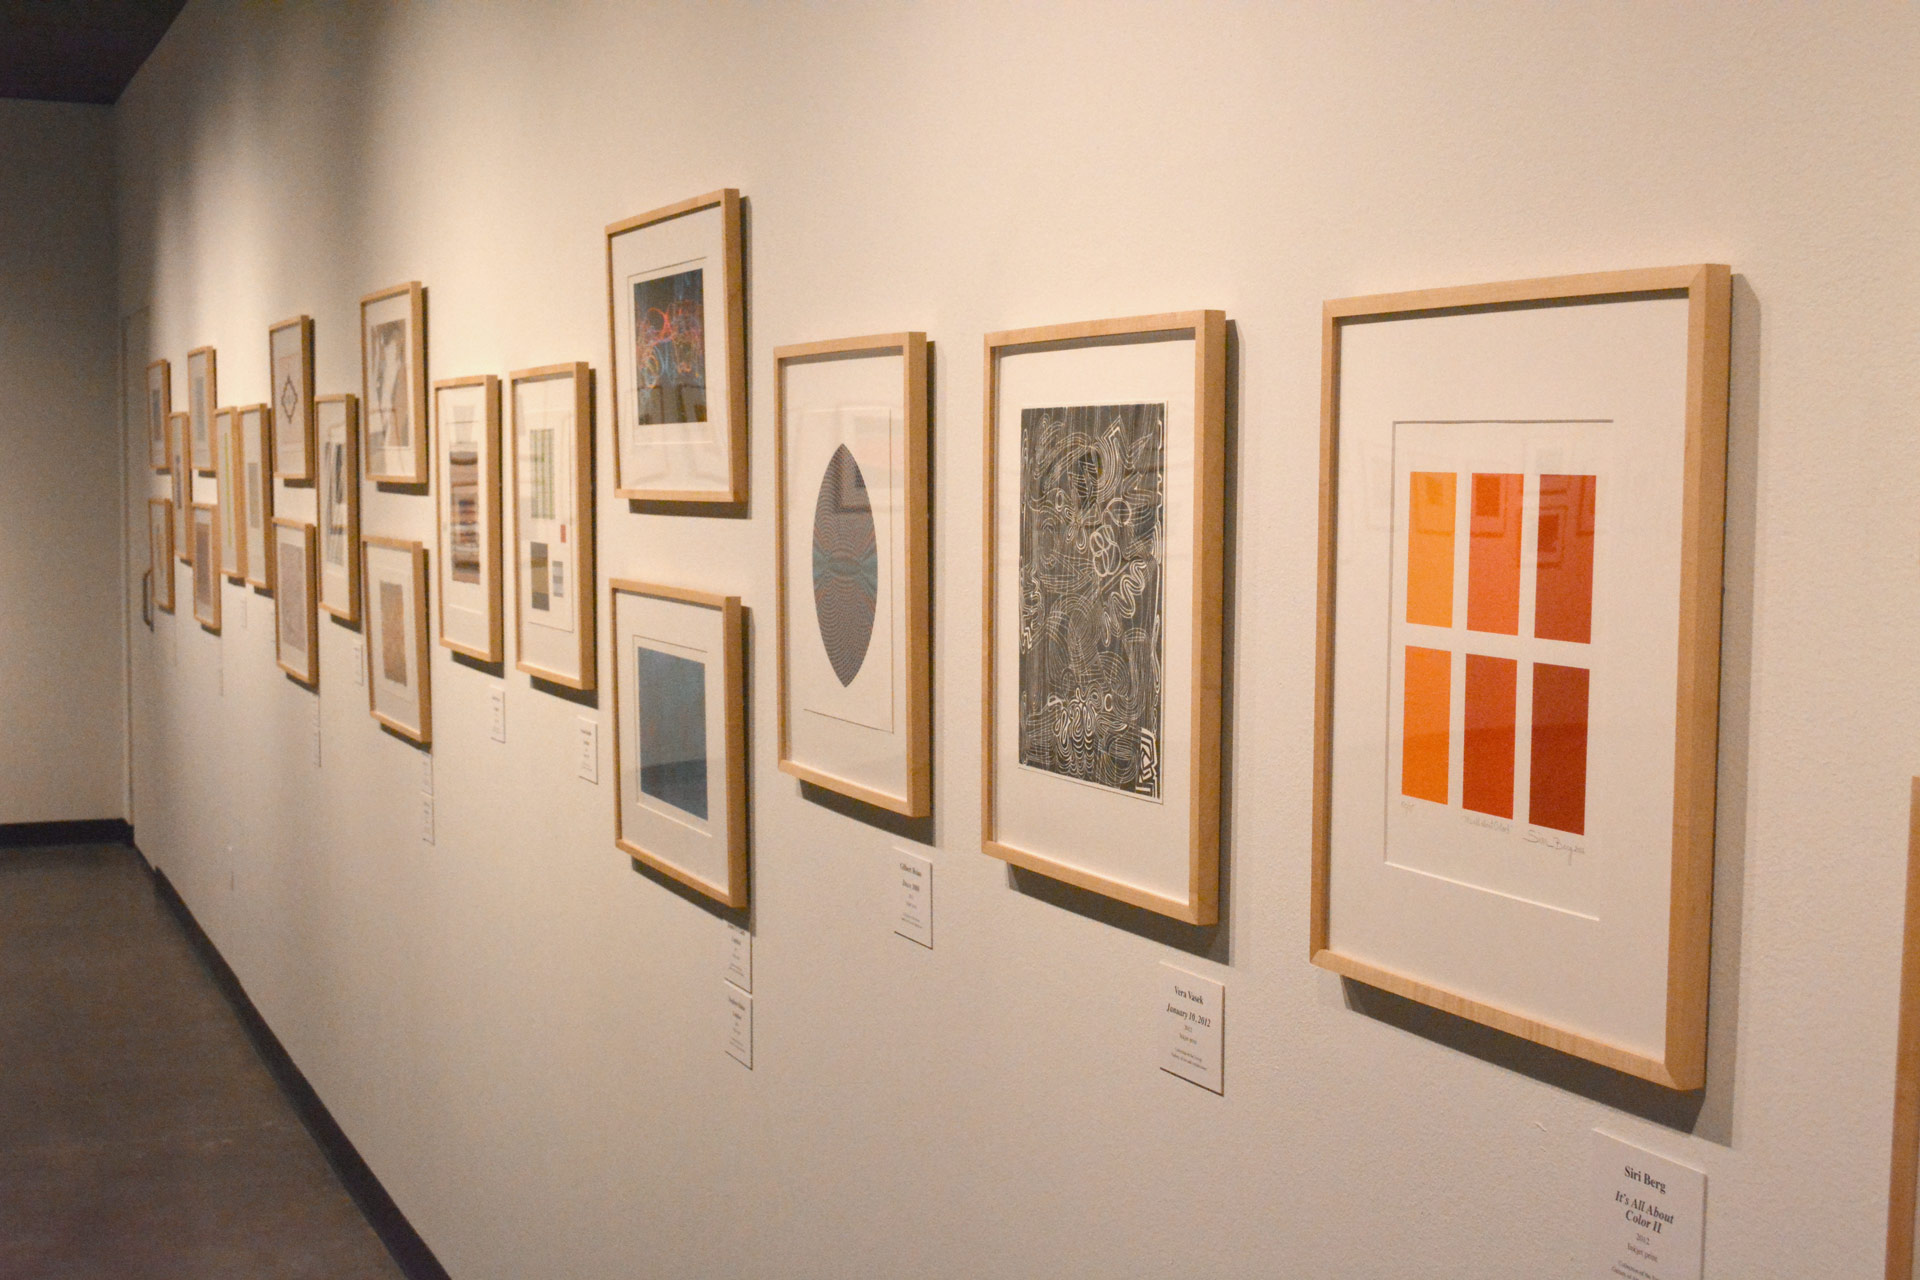 Artist to comment on abstract show at UHCL Art Gallery